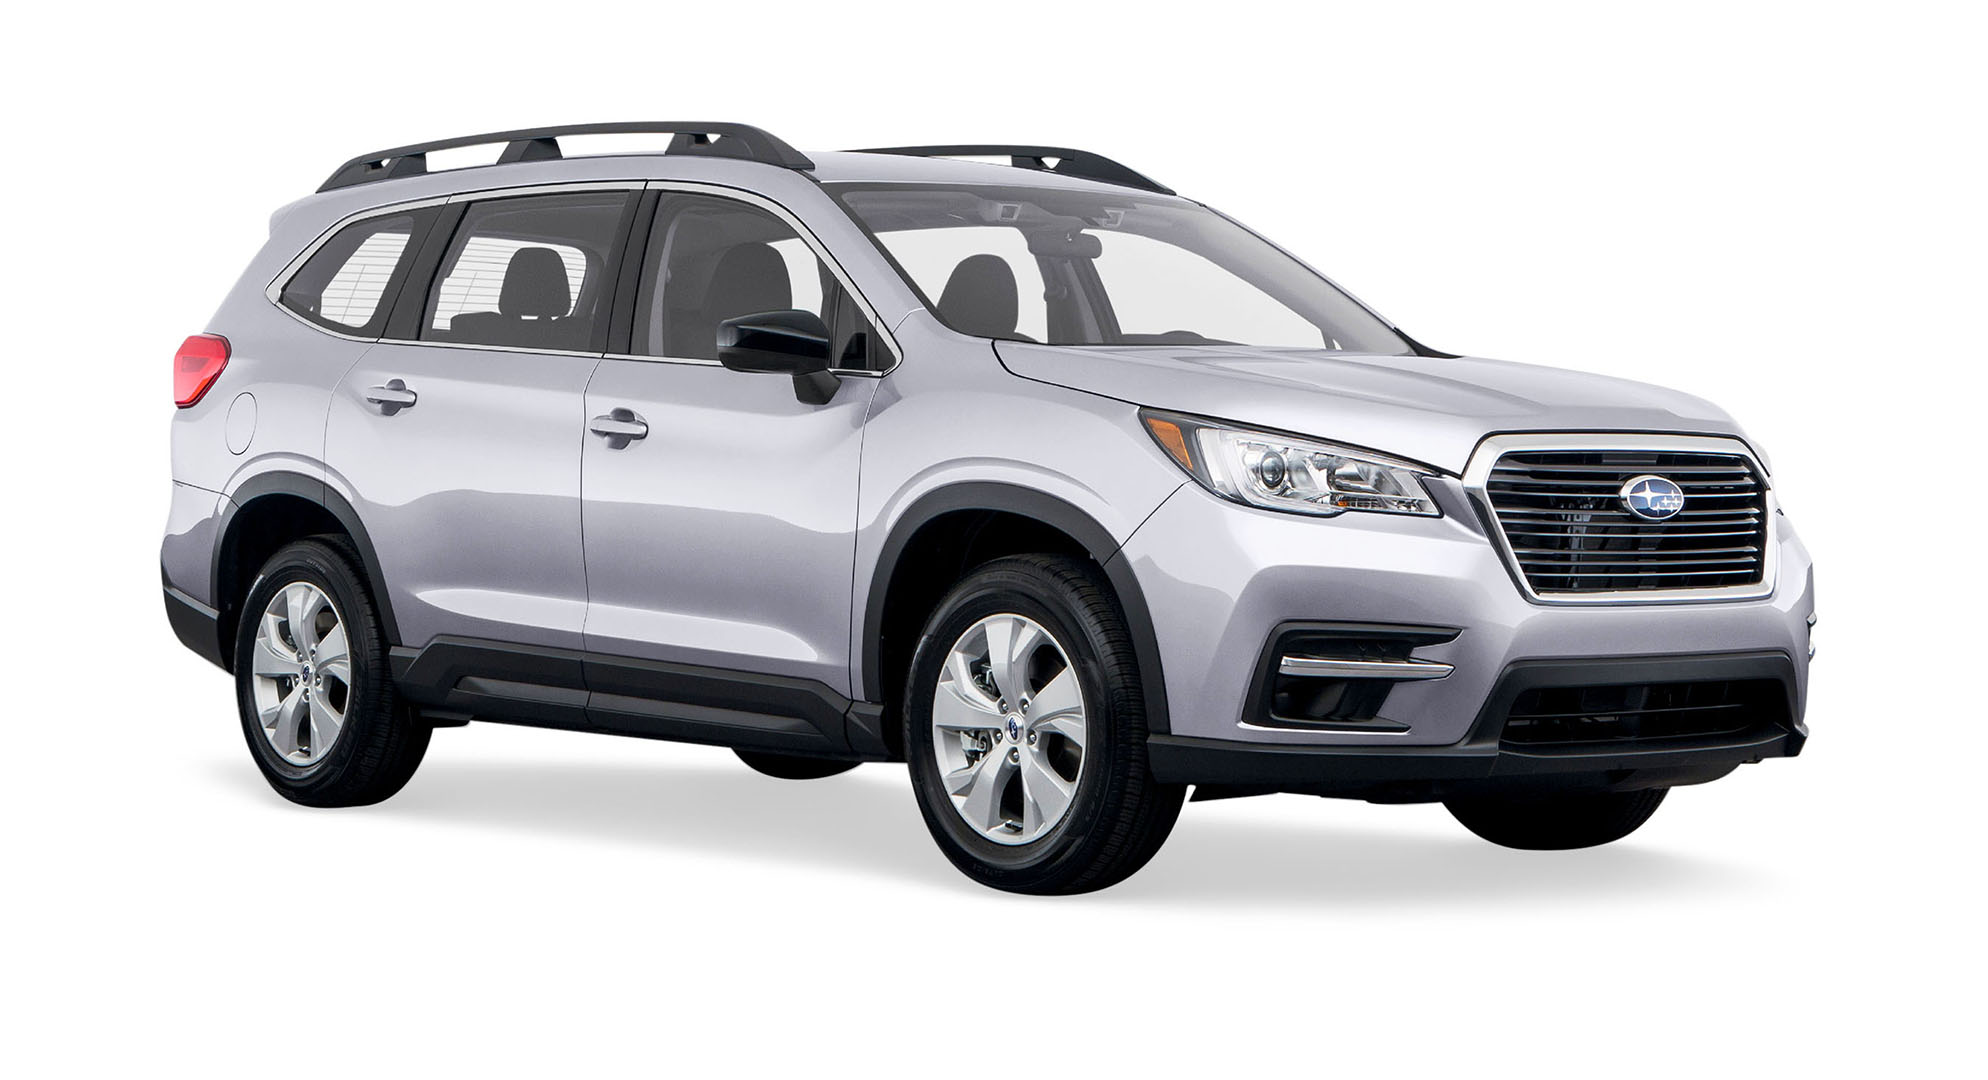 silver subaru ascent sport utility vehicle